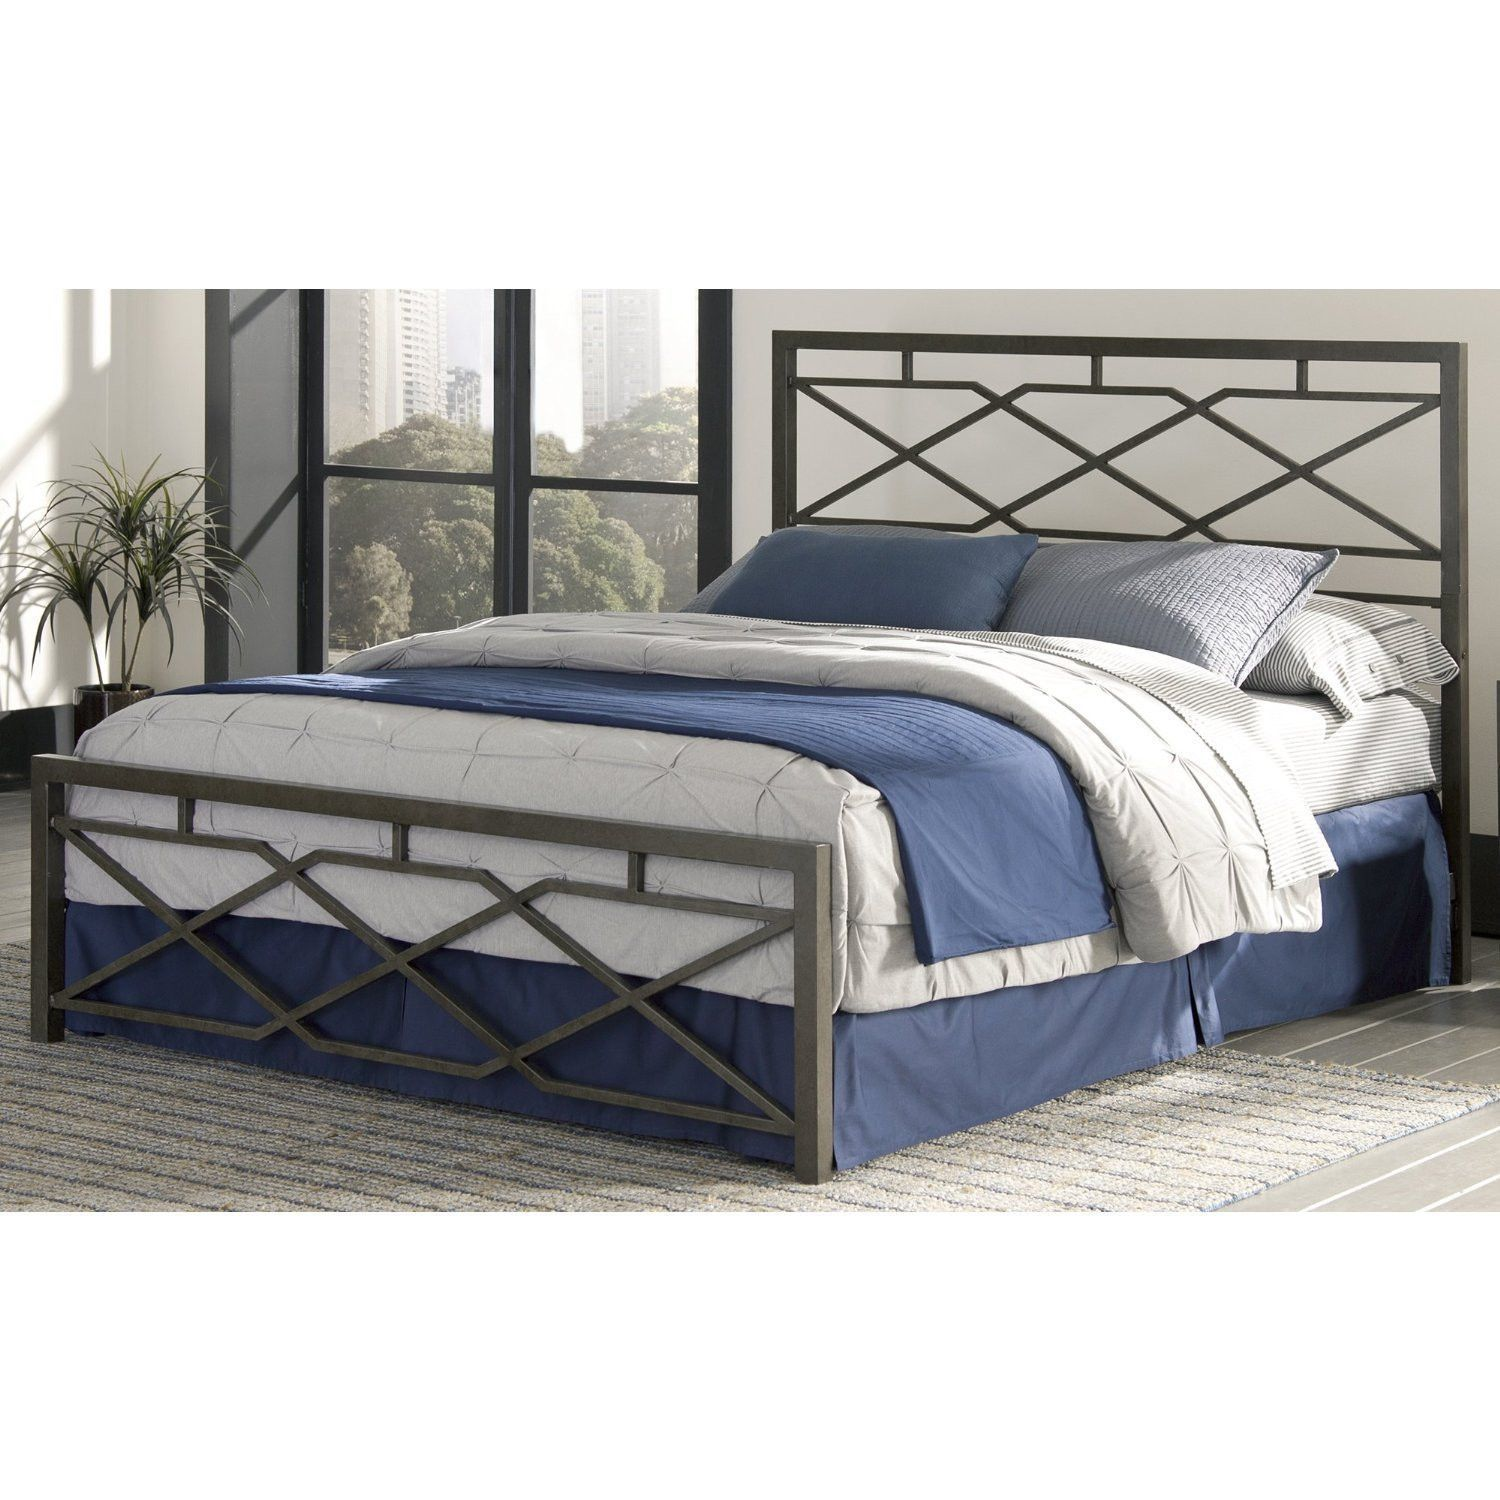 Carbon steel folding bed frame w headboard footboard for Steel bed frame